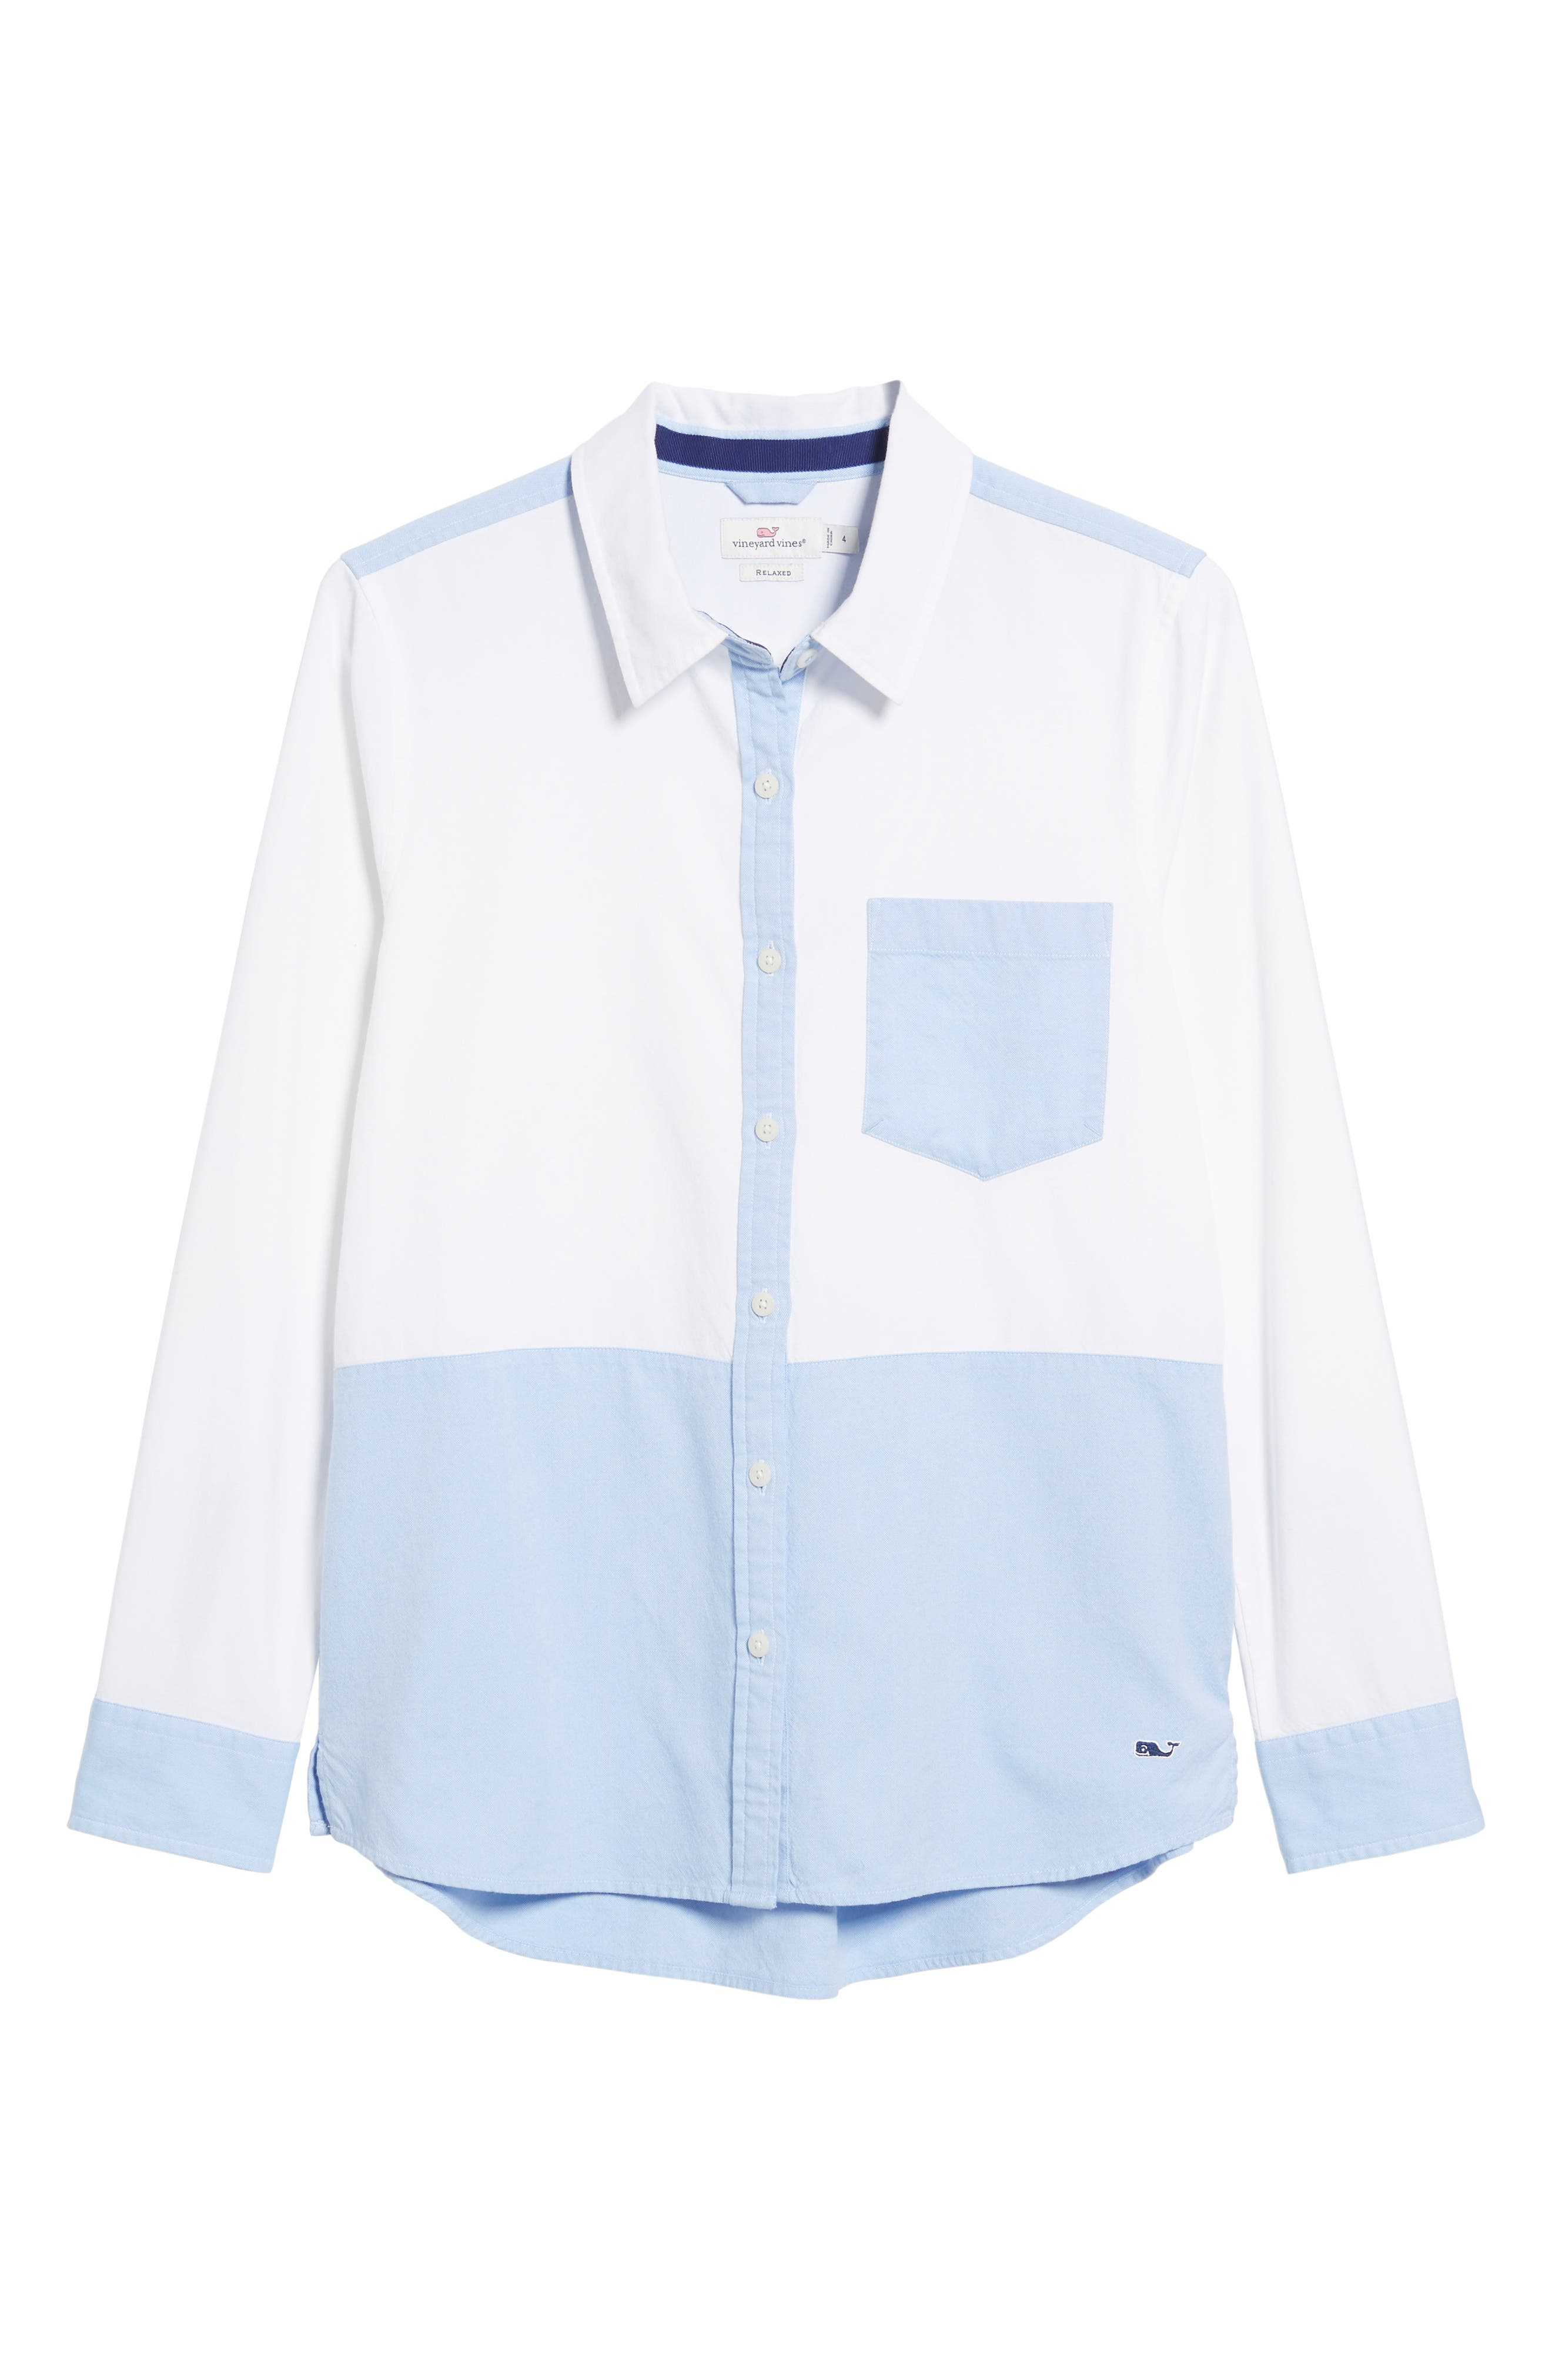 Colorblock Relaxed Oxford Blouse,                             Alternate thumbnail 6, color,                             WHITE CAP